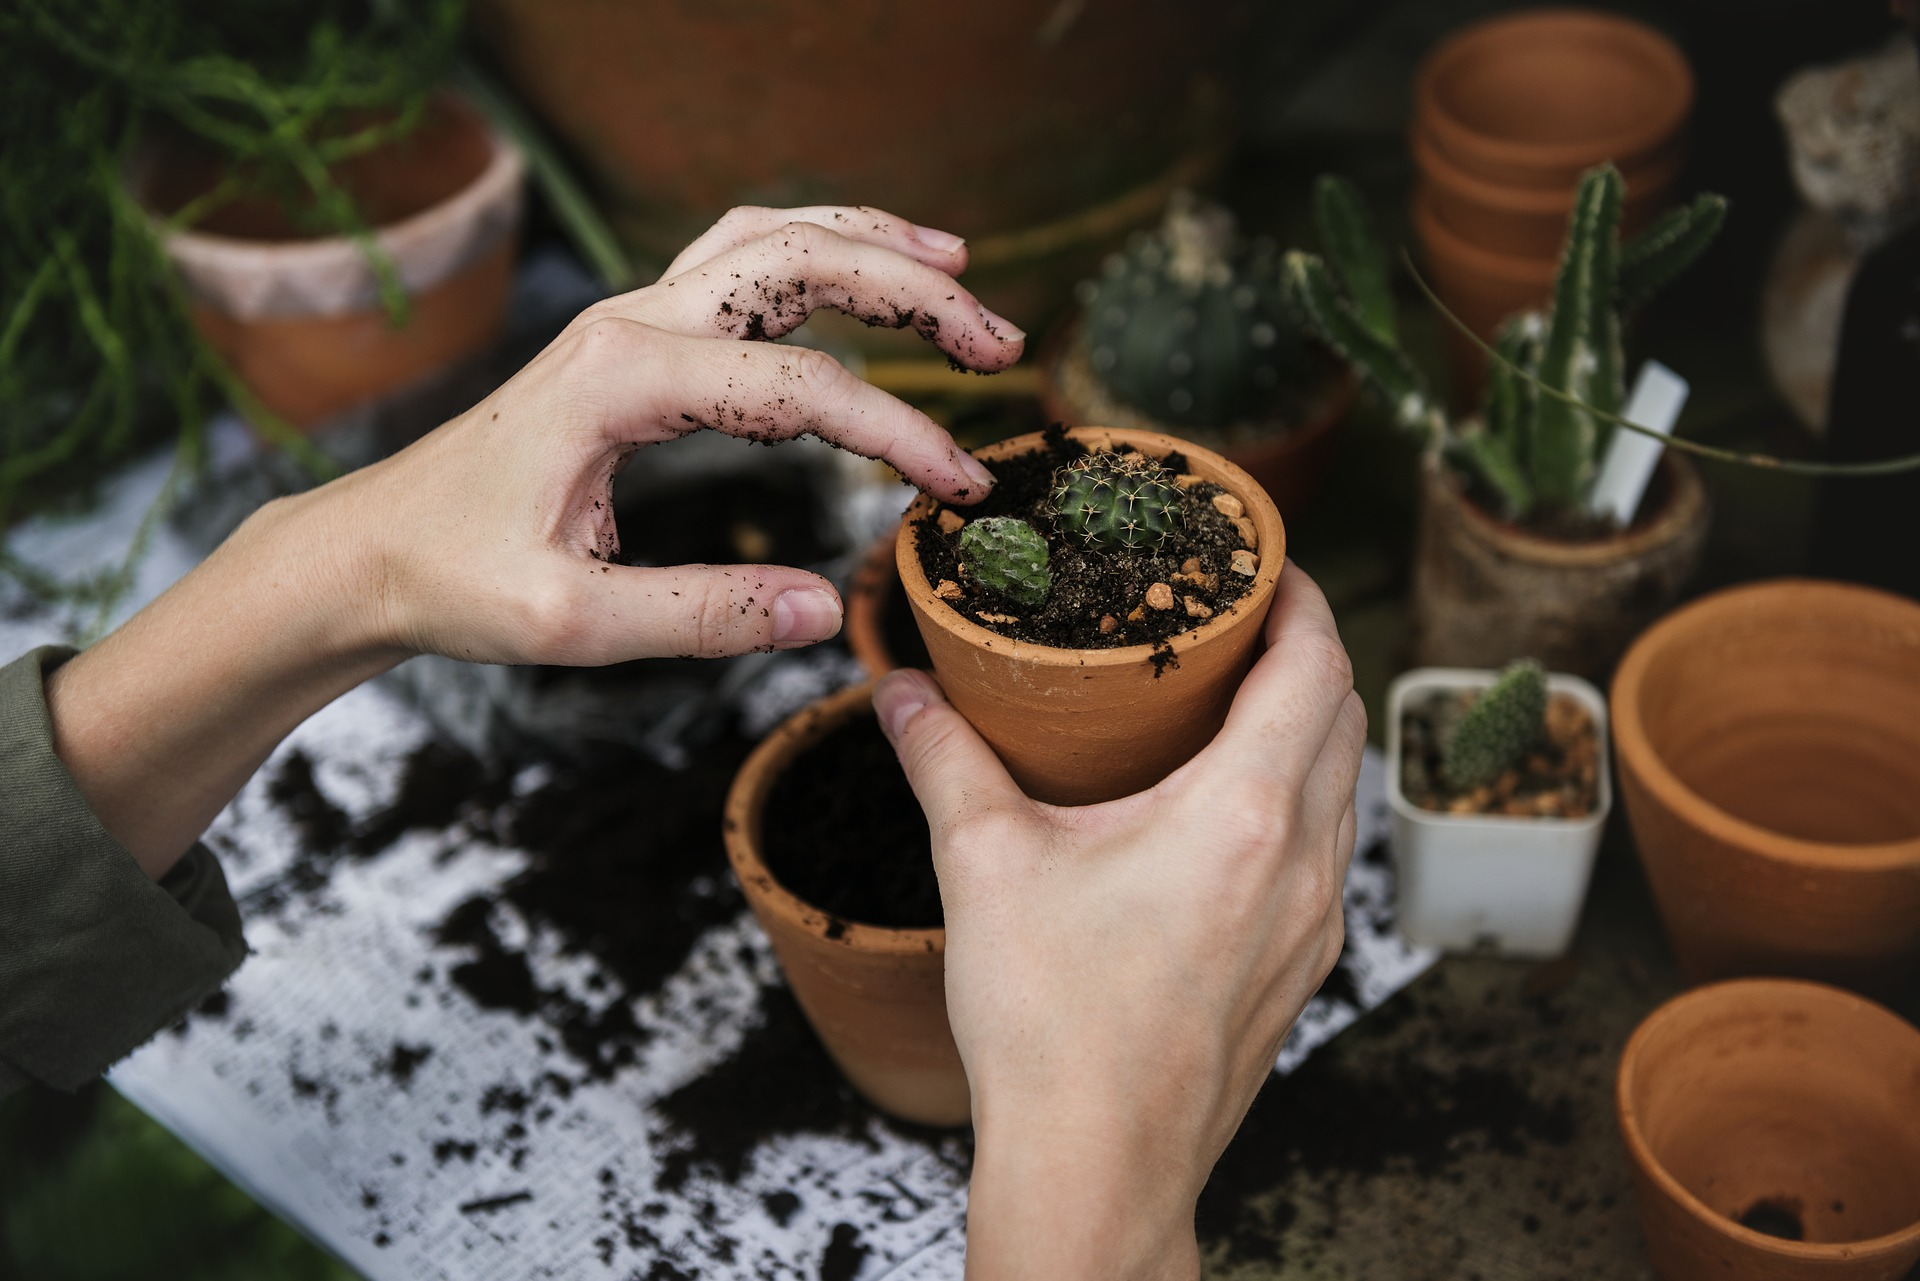 Gardening Can Positively Affect Your Physical And Mental Health